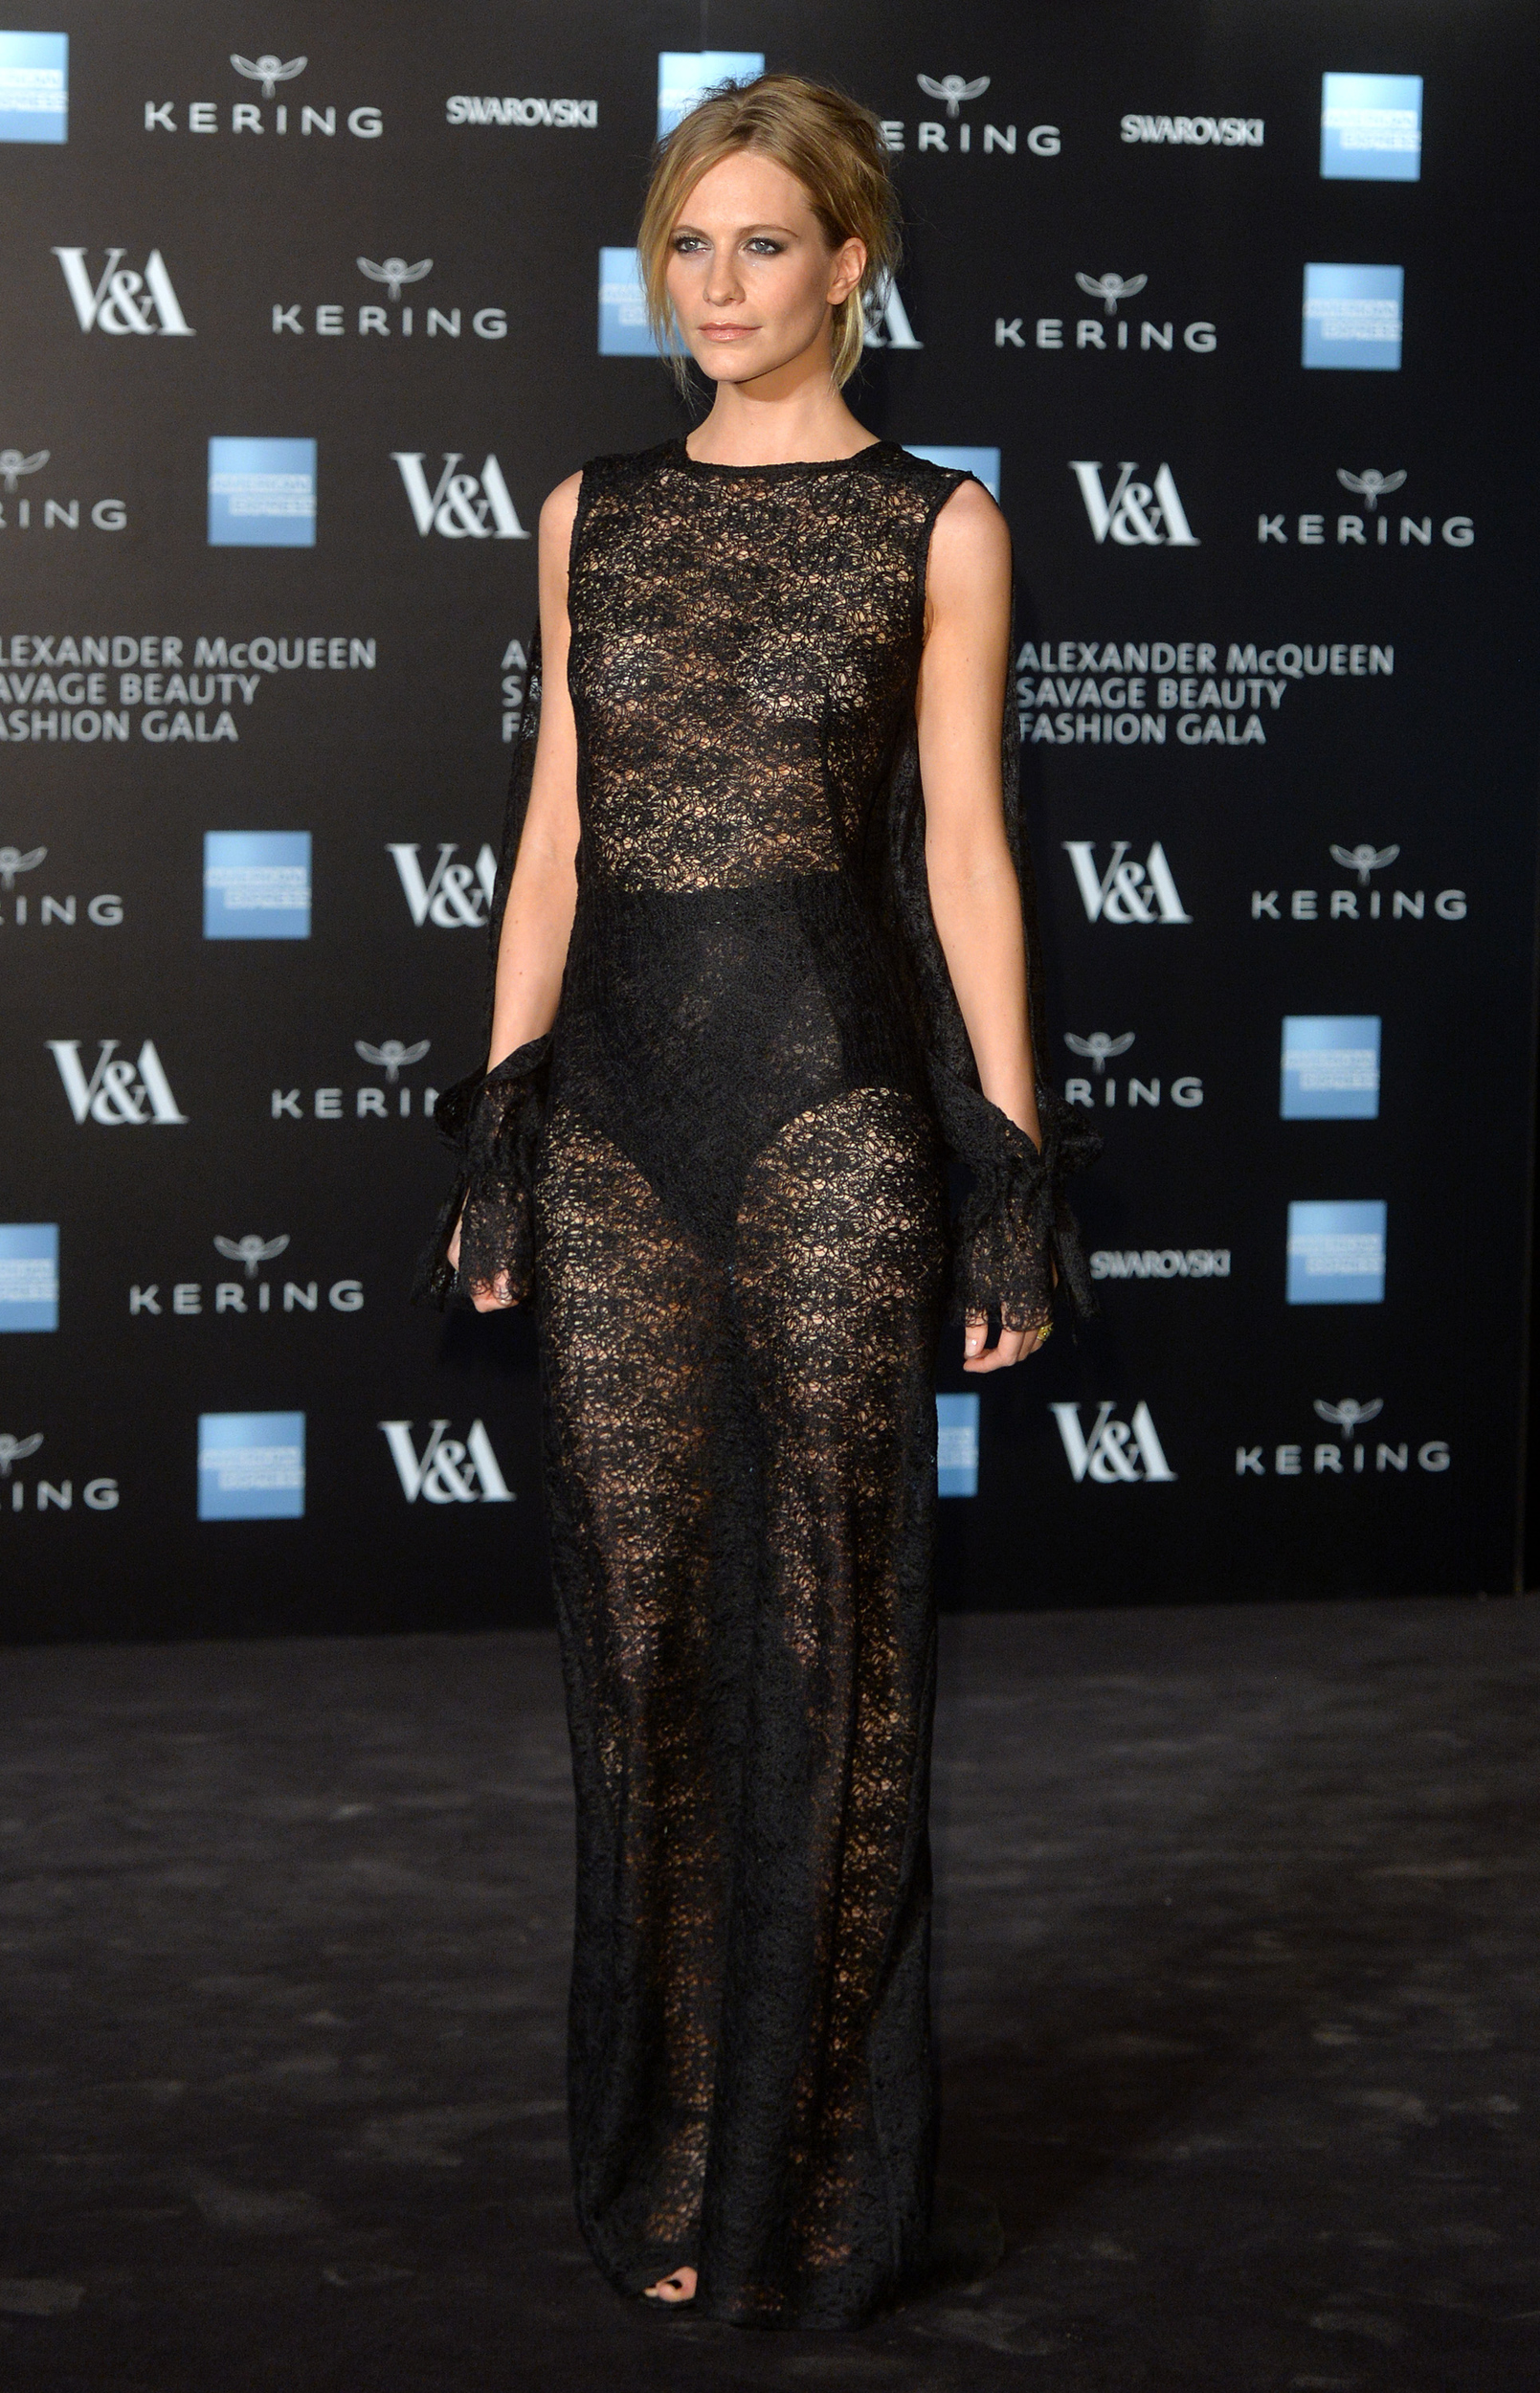 Poppy-Delevingne-alexander-mcqueen-savage-beauty-private-view-red-carpet-arri-1-1